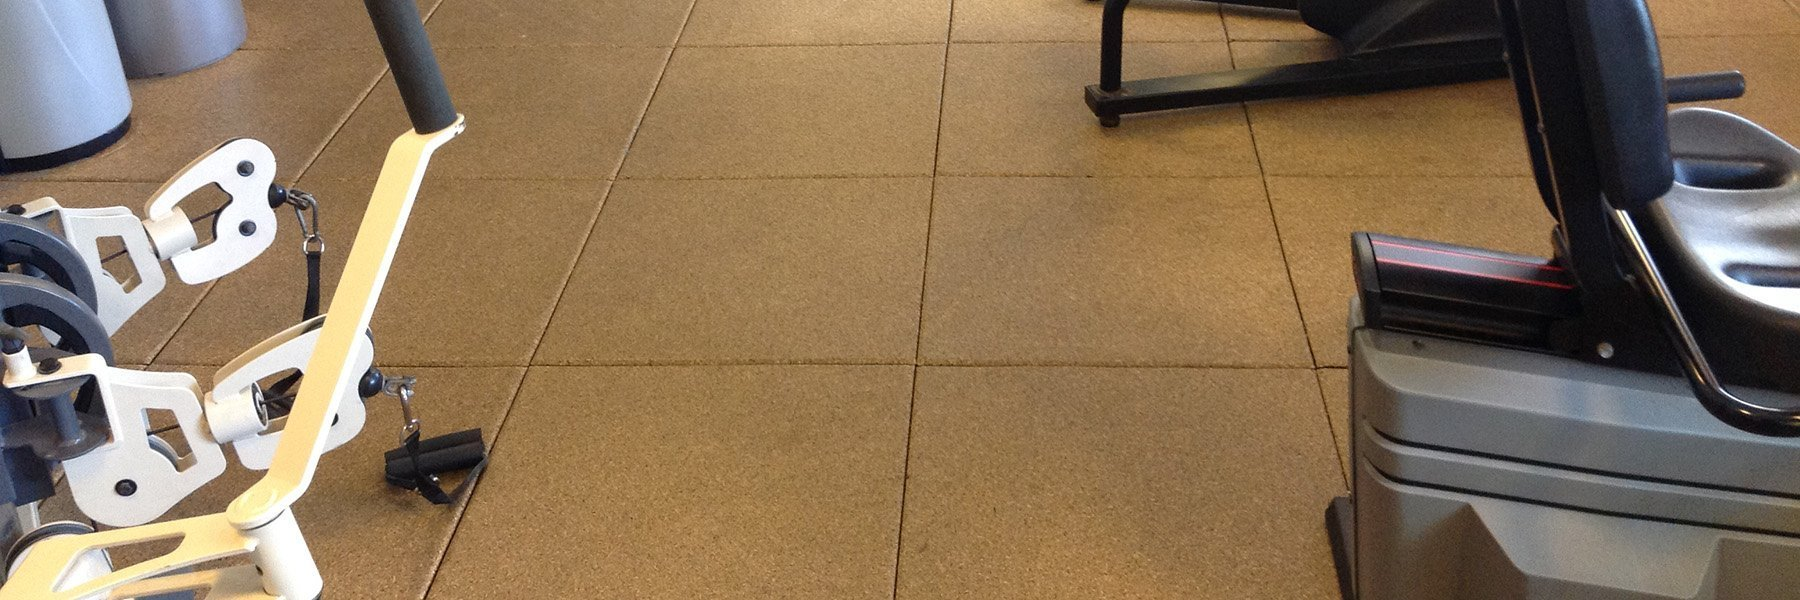 Recycled Rubber Flooring Tiles